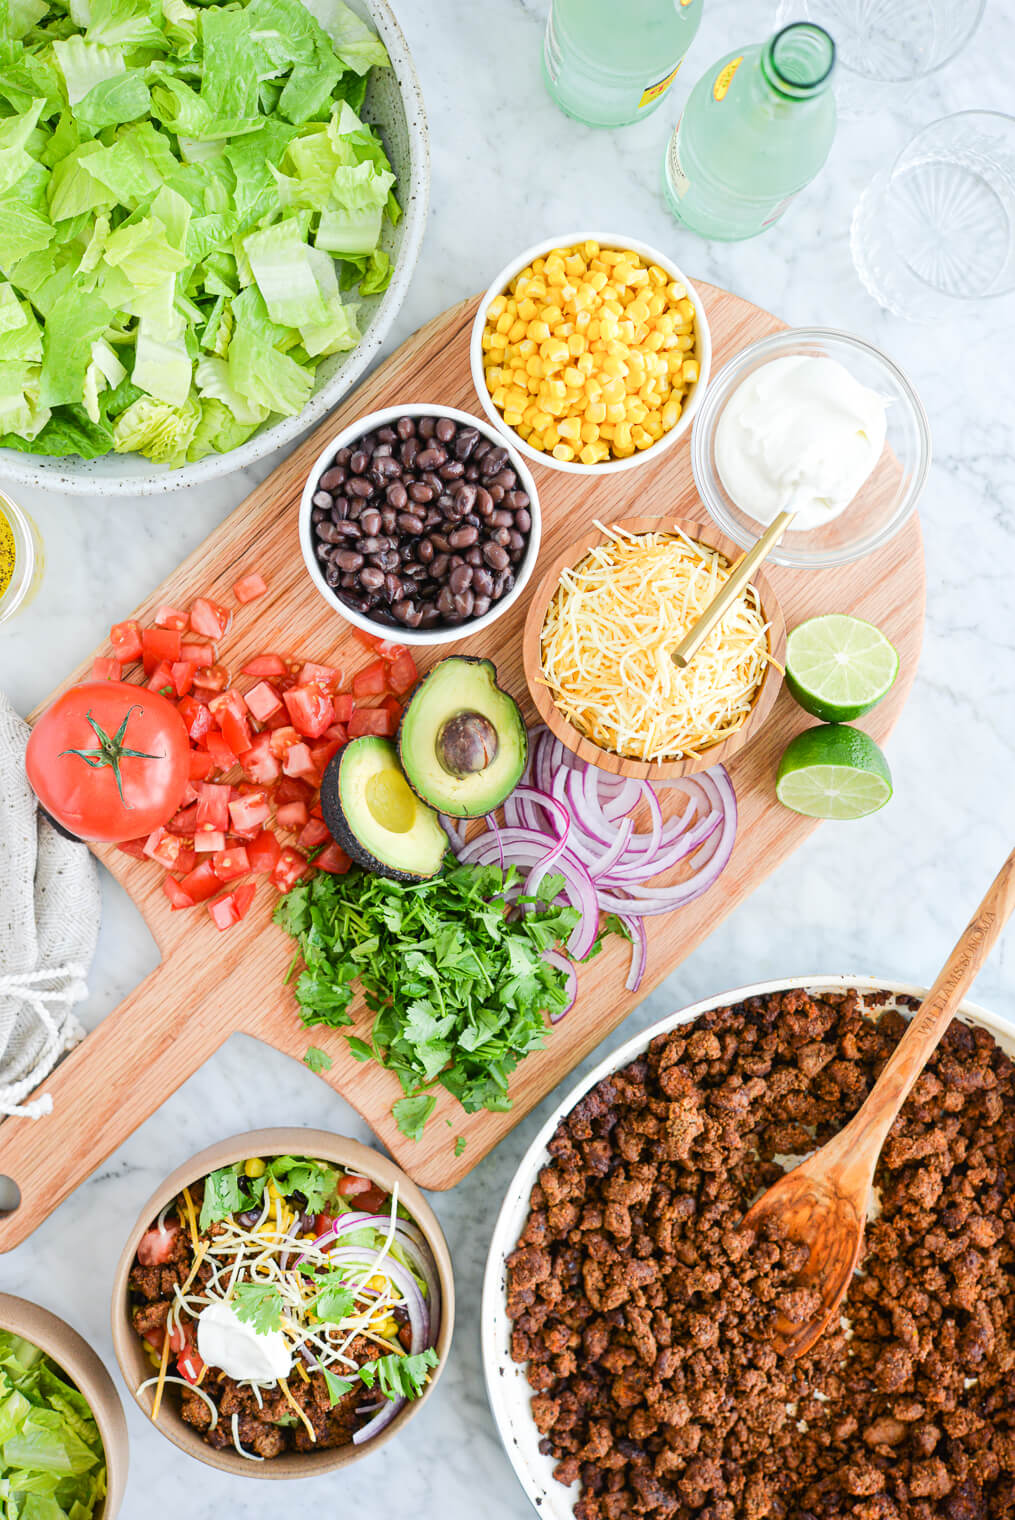 wooden cutting board on a marble surface topped with bowls of sour cream, shredded cheese, black beans, corn, diced tomatoes, cilantro, avocado, and red onion, next to a pan of ground beef